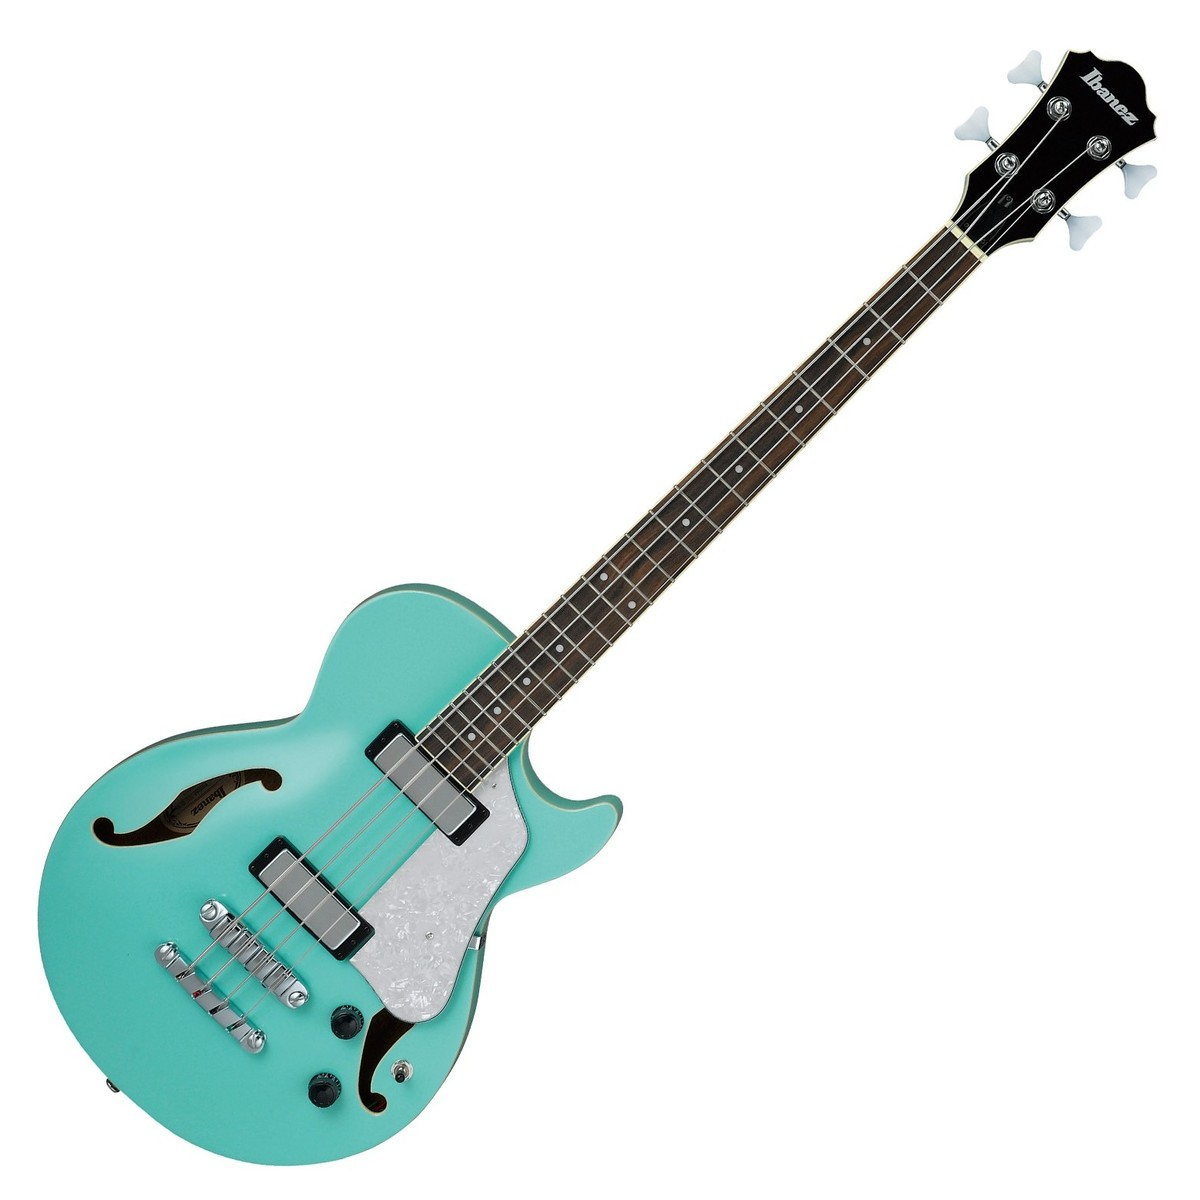 ibanez agb260 artcore vibrante bass sea foam green at gear4music. Black Bedroom Furniture Sets. Home Design Ideas